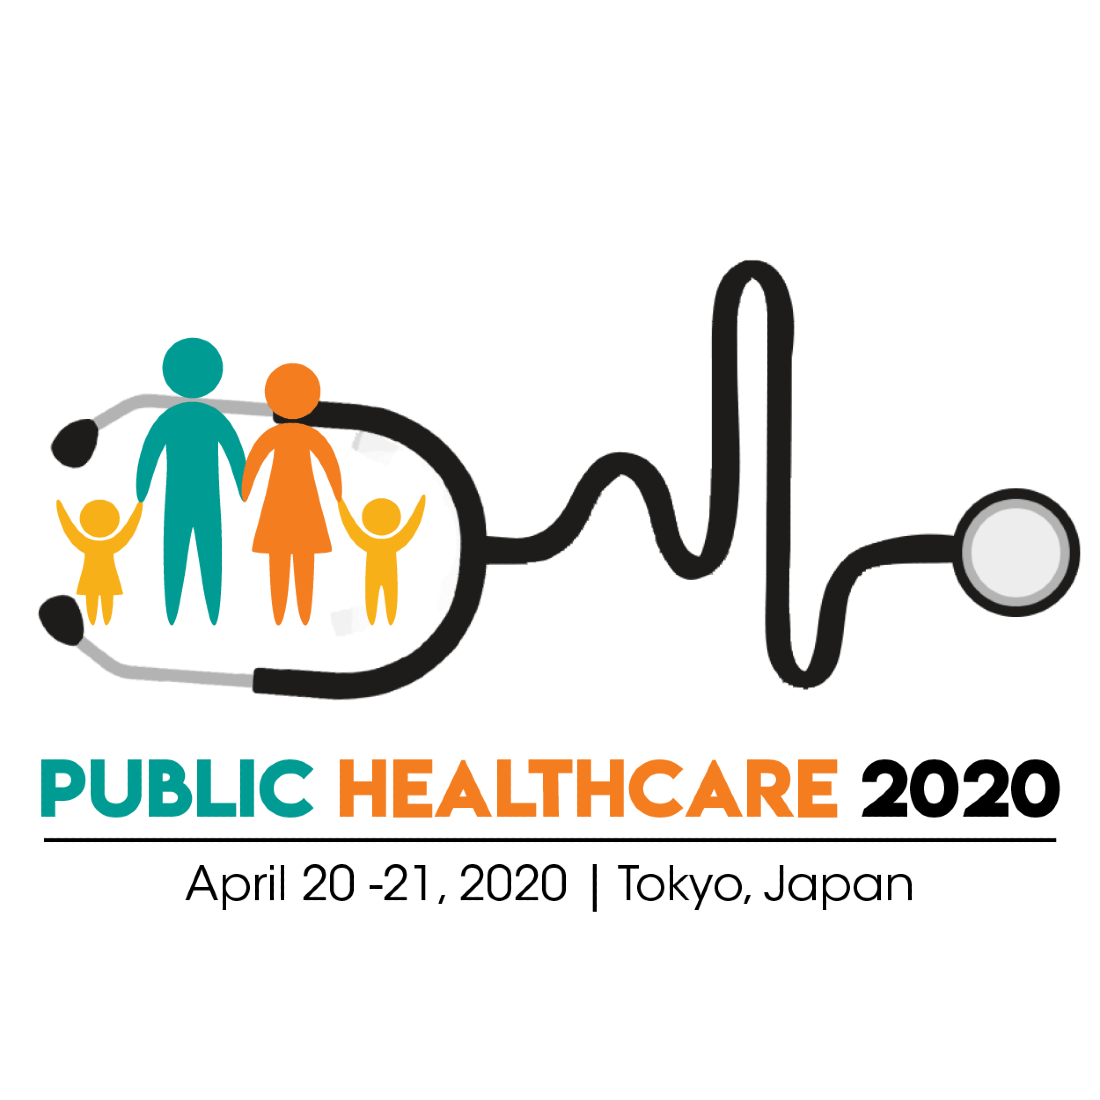 7th International Conference on Public Healthcare and Epidemiology